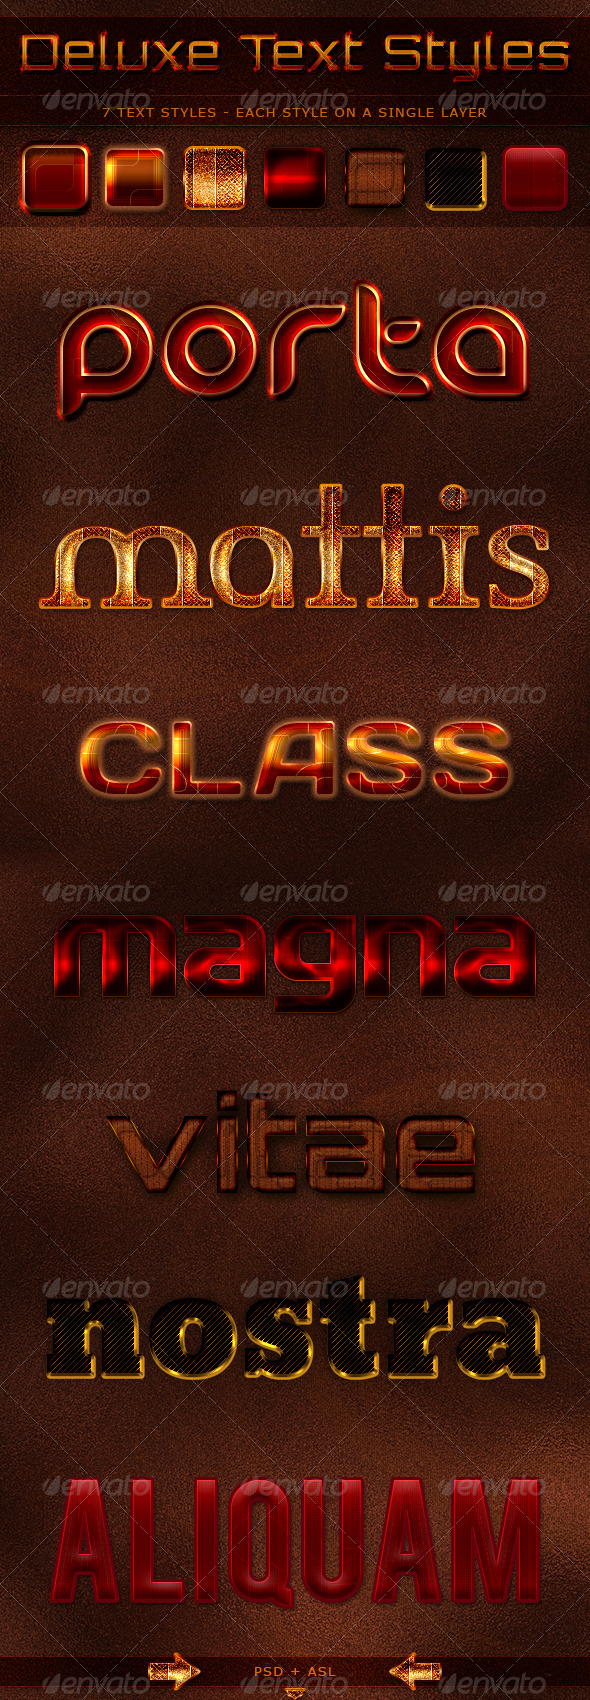 Graphic River Deluxe Text Styles Add-ons -  Photoshop  Styles  Text Effects 237227